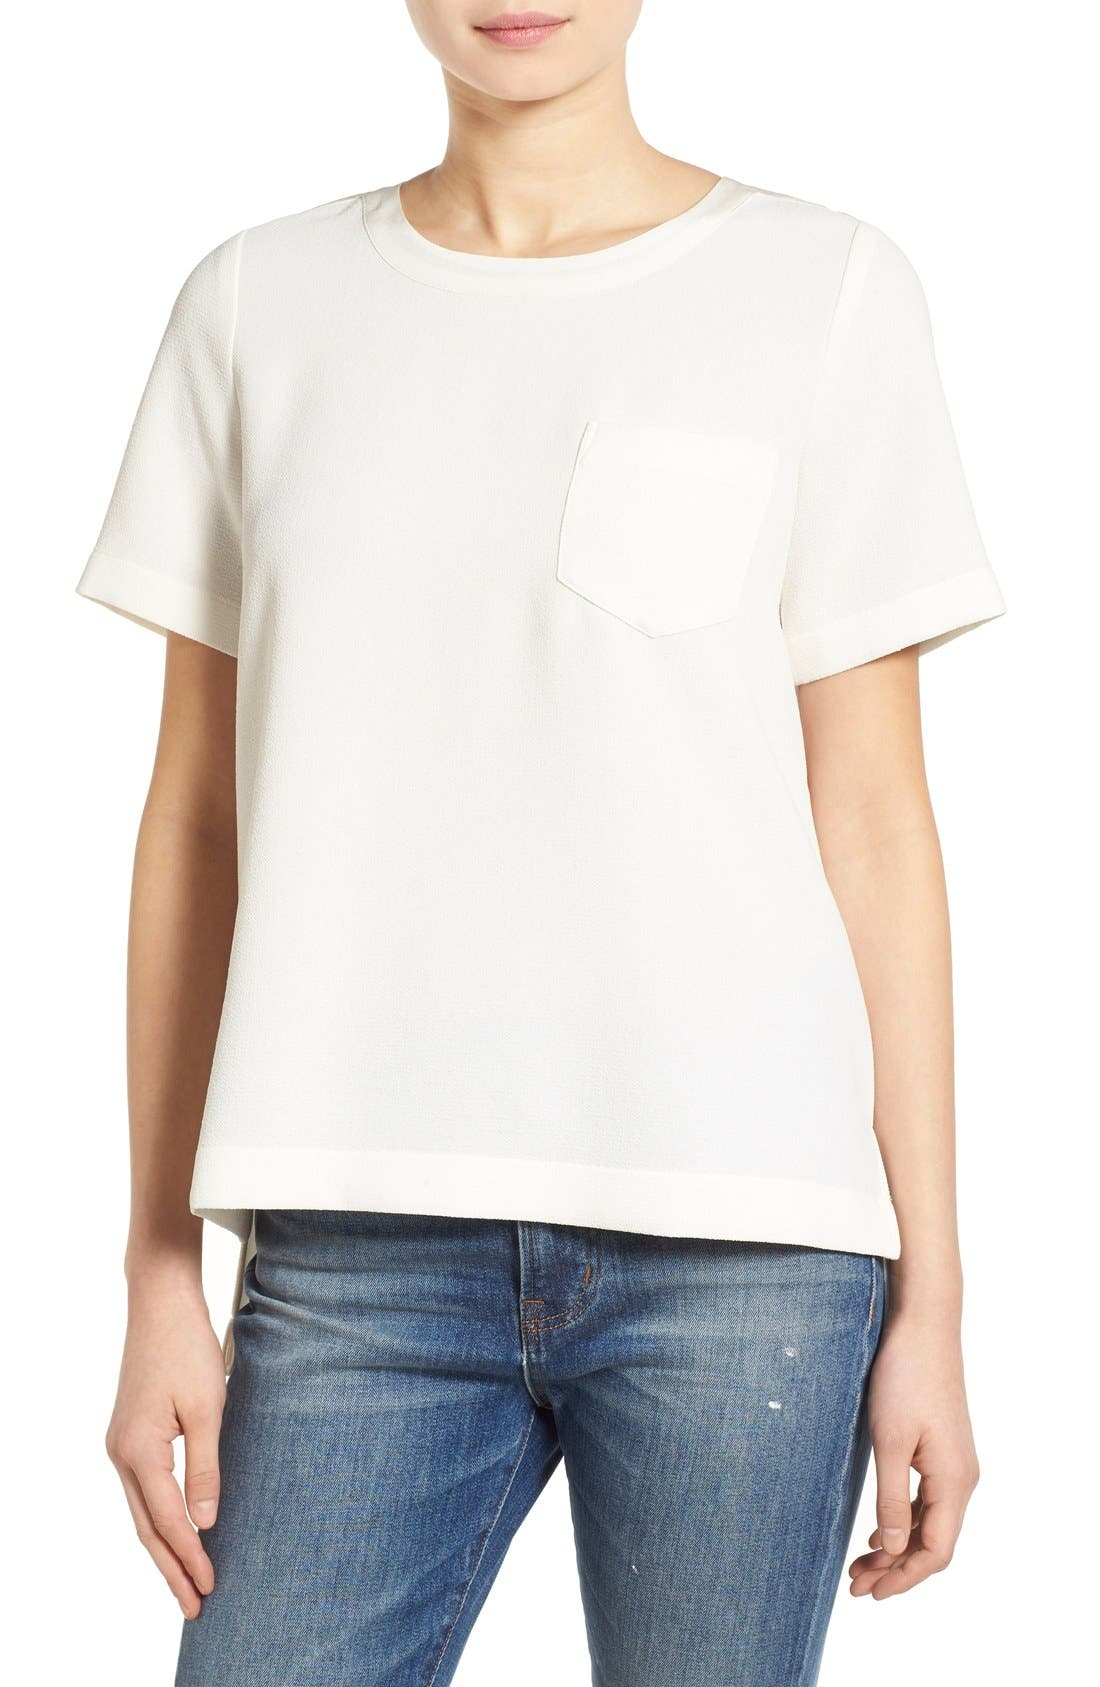 Alternate Image 1 Selected - Madewell Short Sleeve Button Back Top